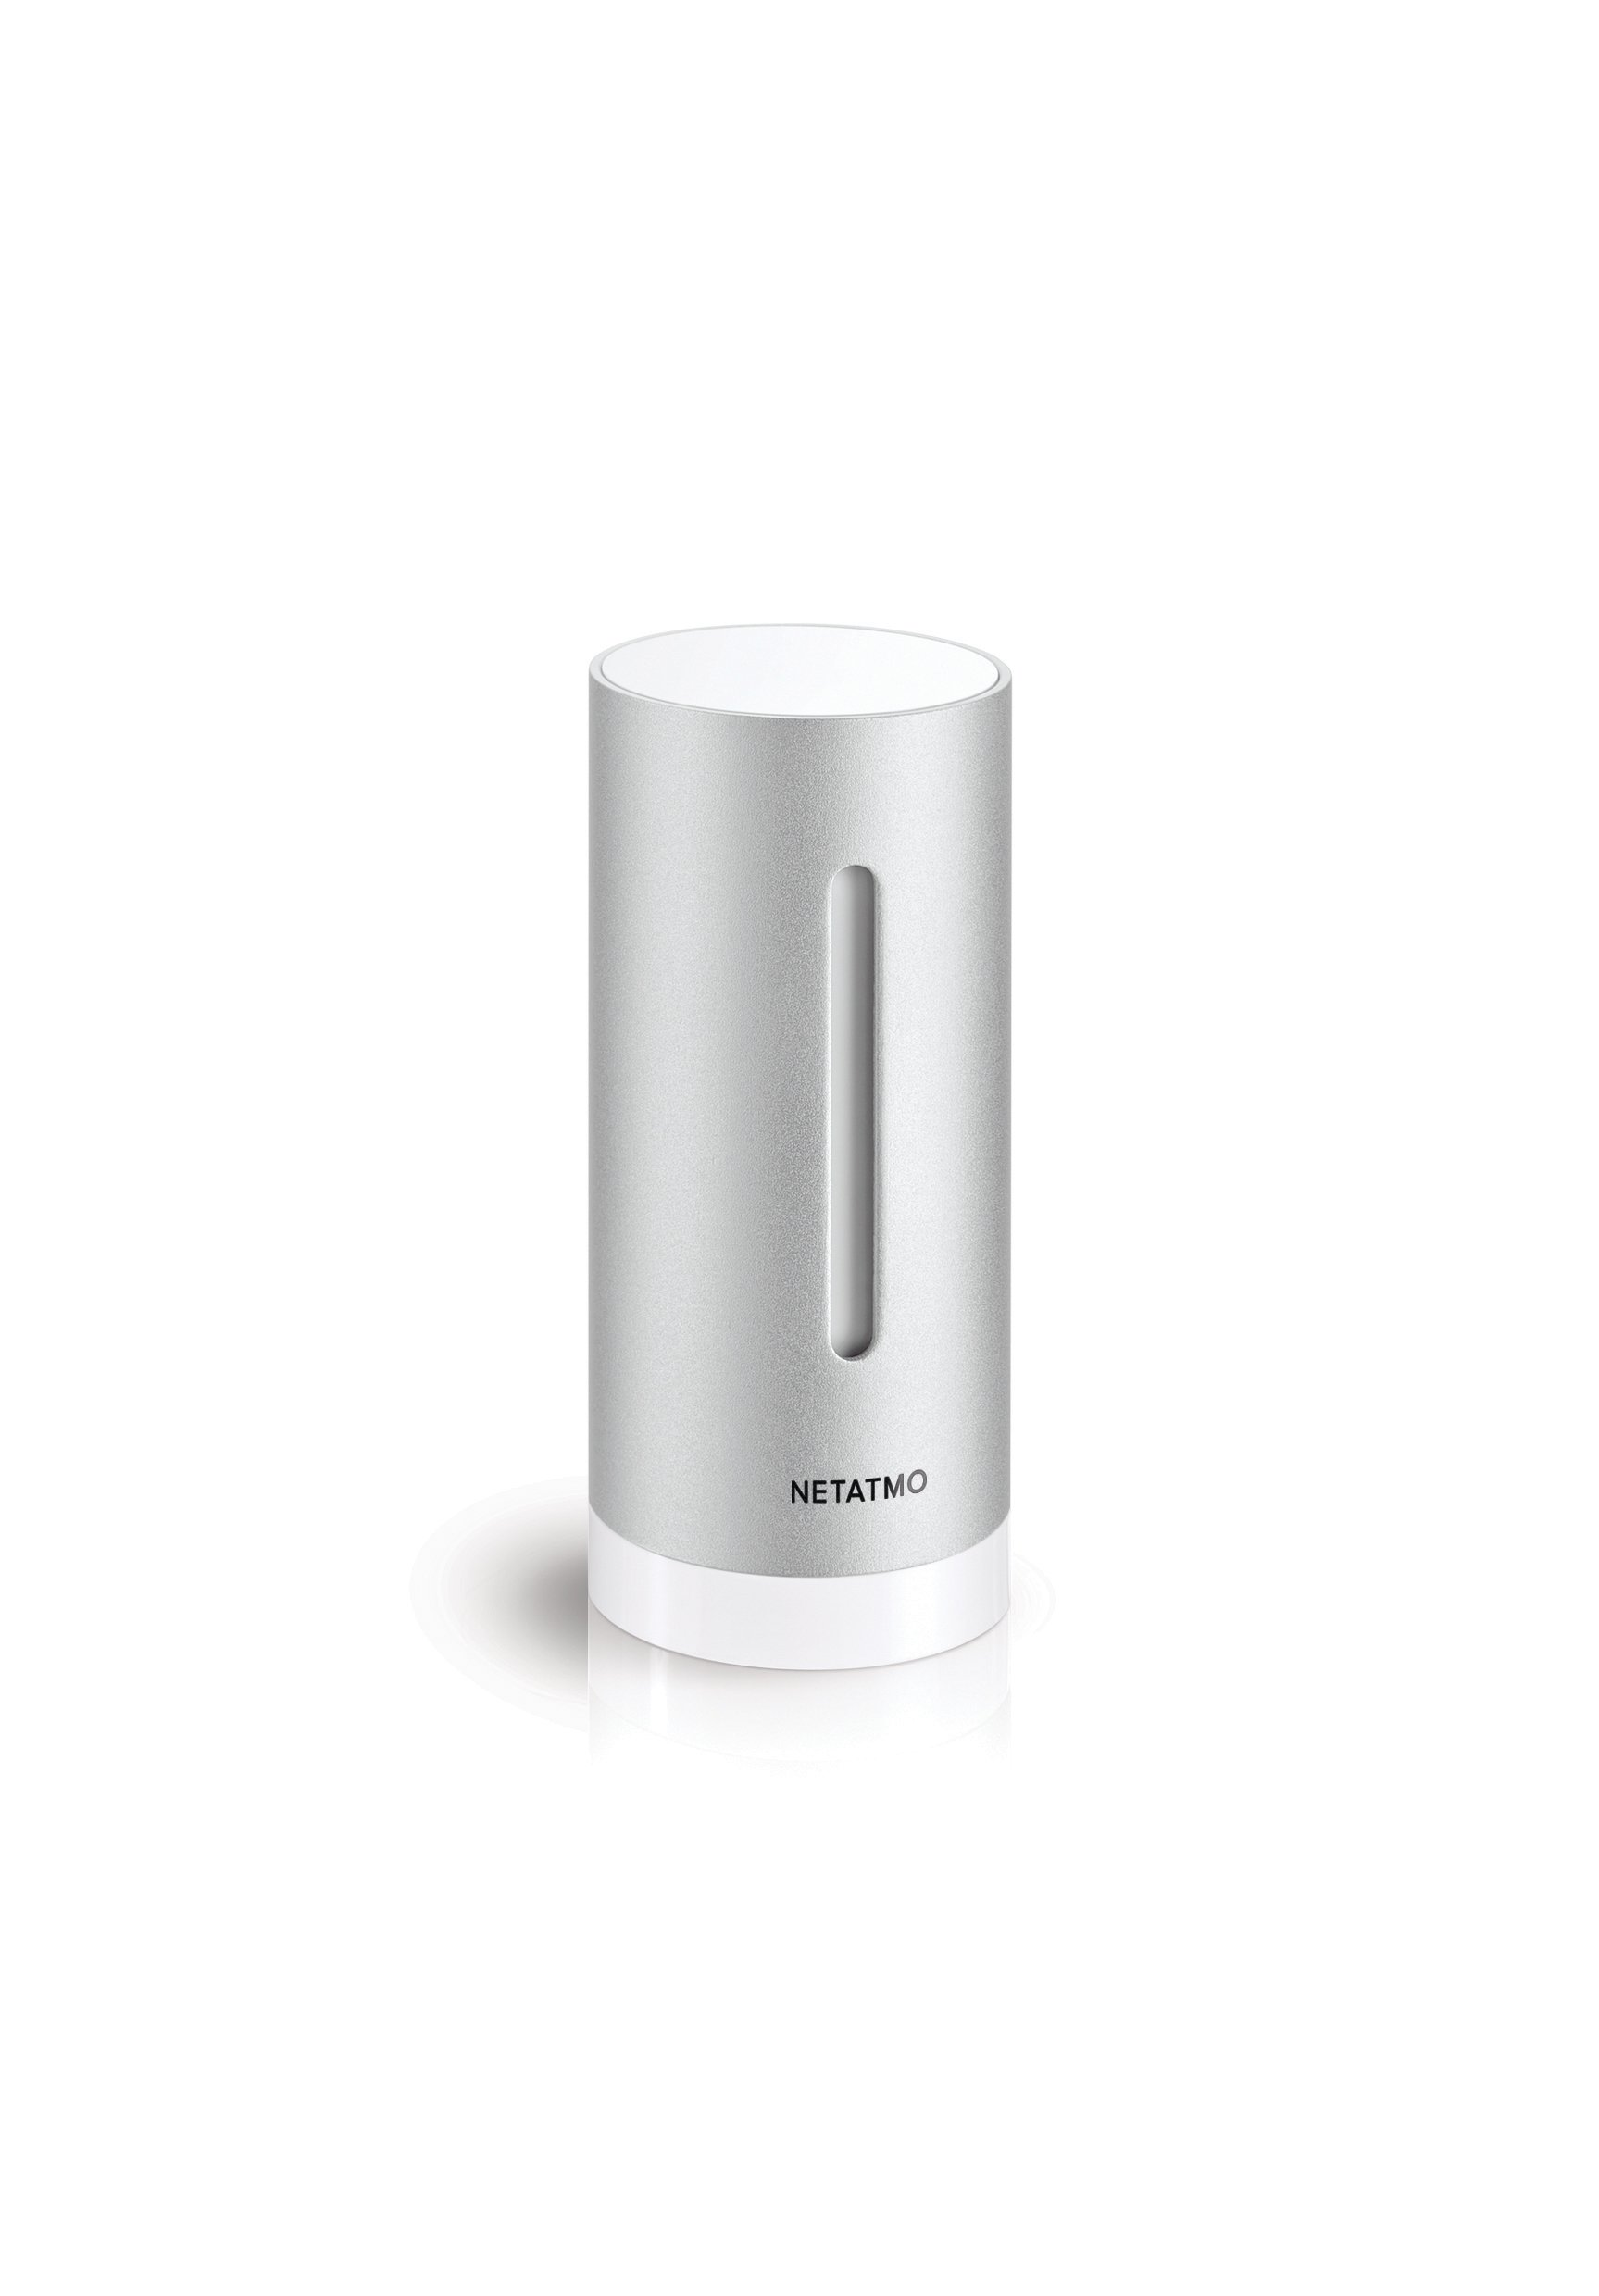 Additional indoor Module for Netatmo Weather Station - Retail Packaging - Aluminium